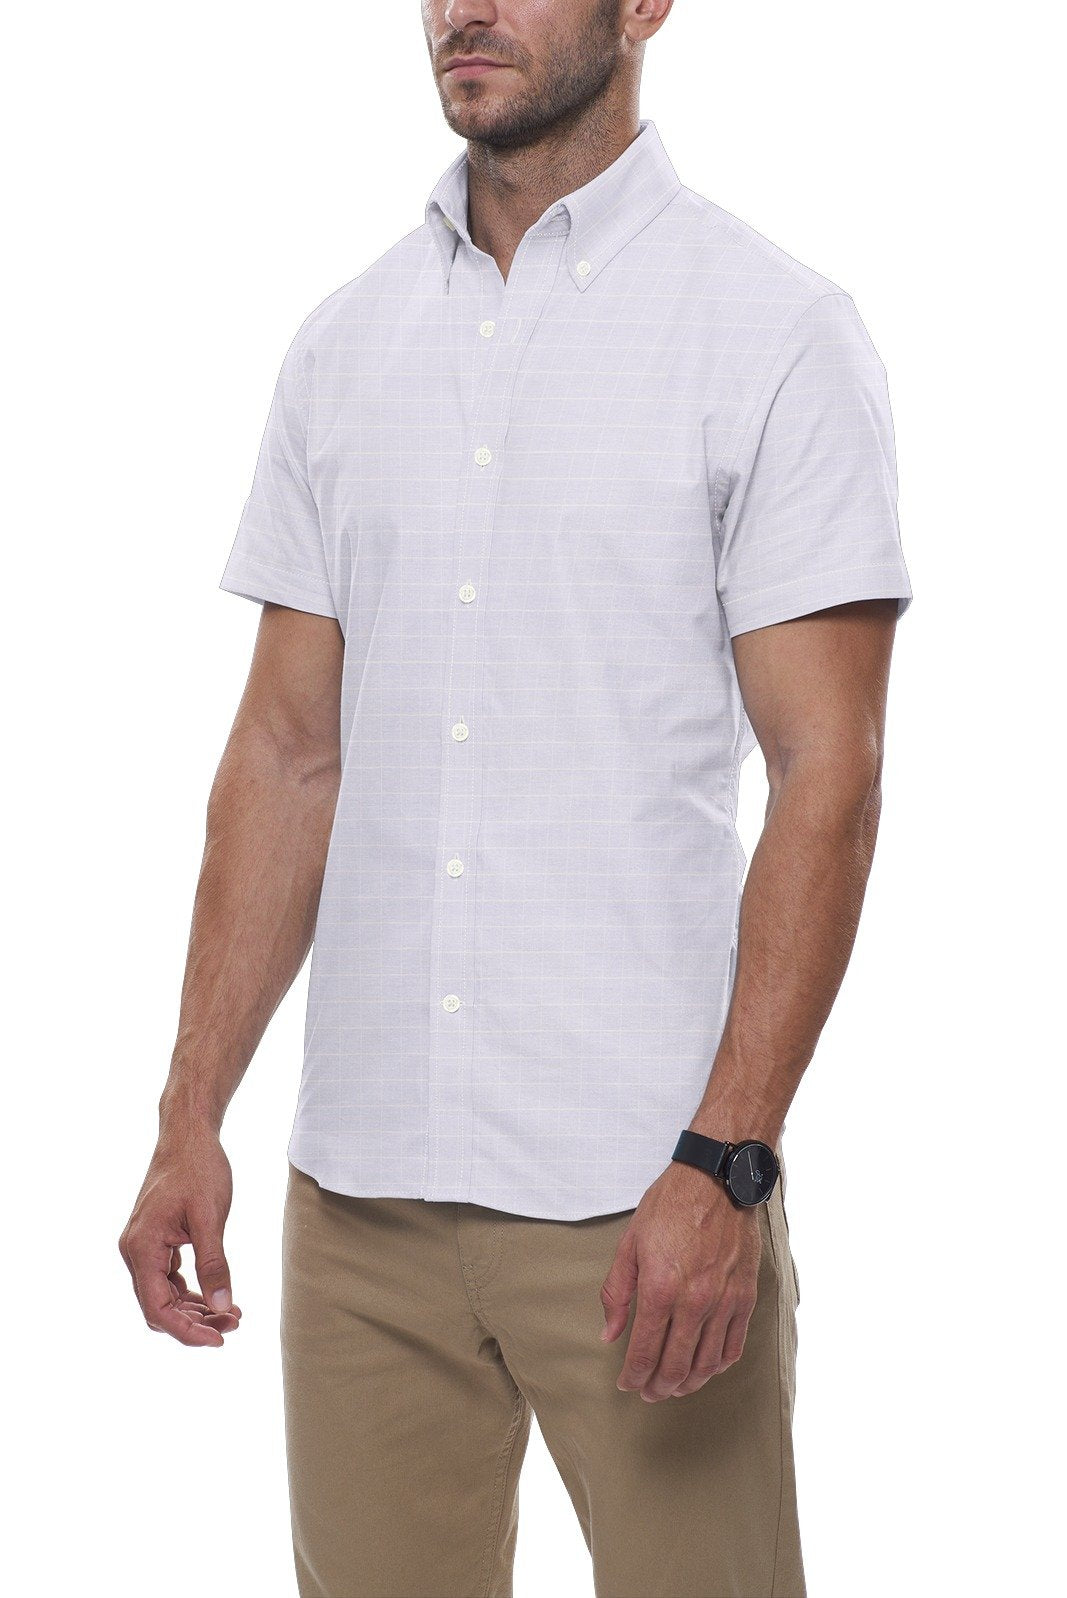 Powder Blue Grid Stripe Linen: Semi-Spread Collar, Short Sleeve